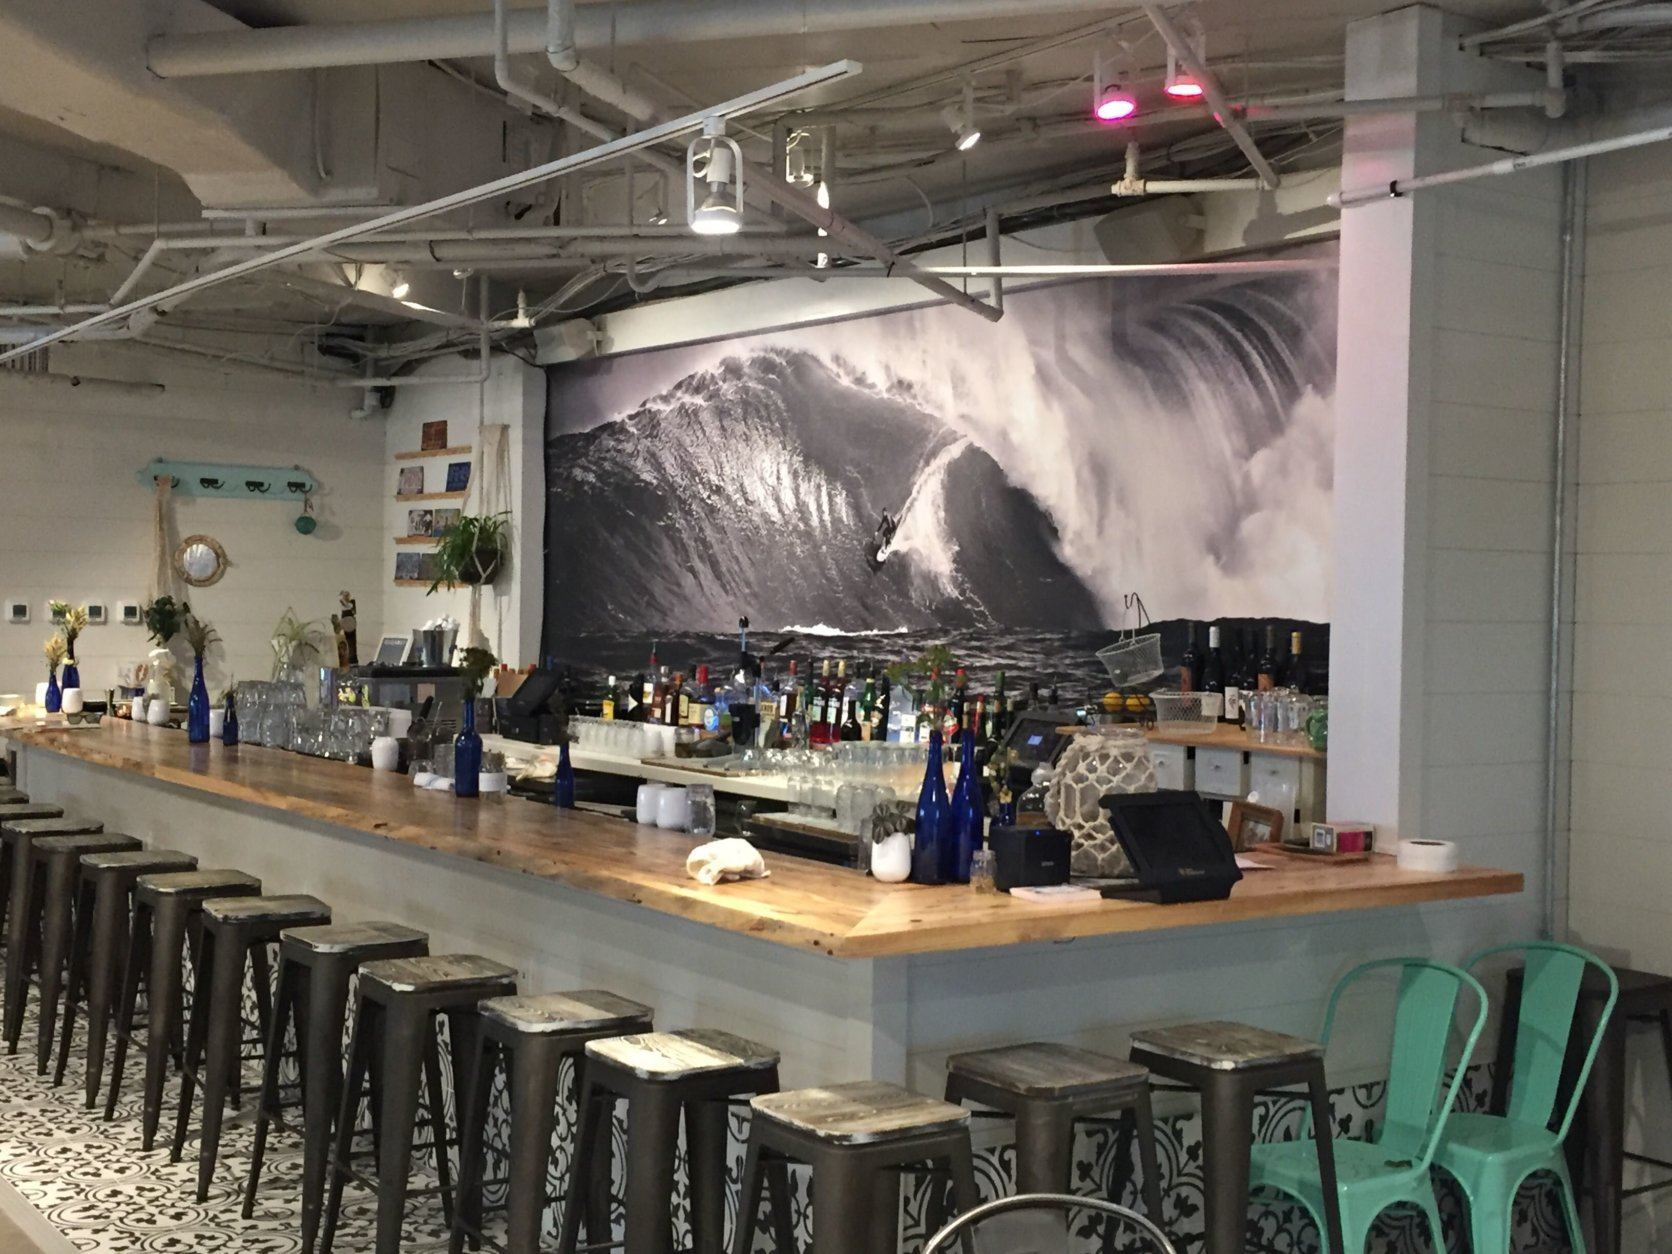 A look inside Heideaway, a new restaurant and bar located on the Bethany Boardwalk. (WTOP/John Domen)